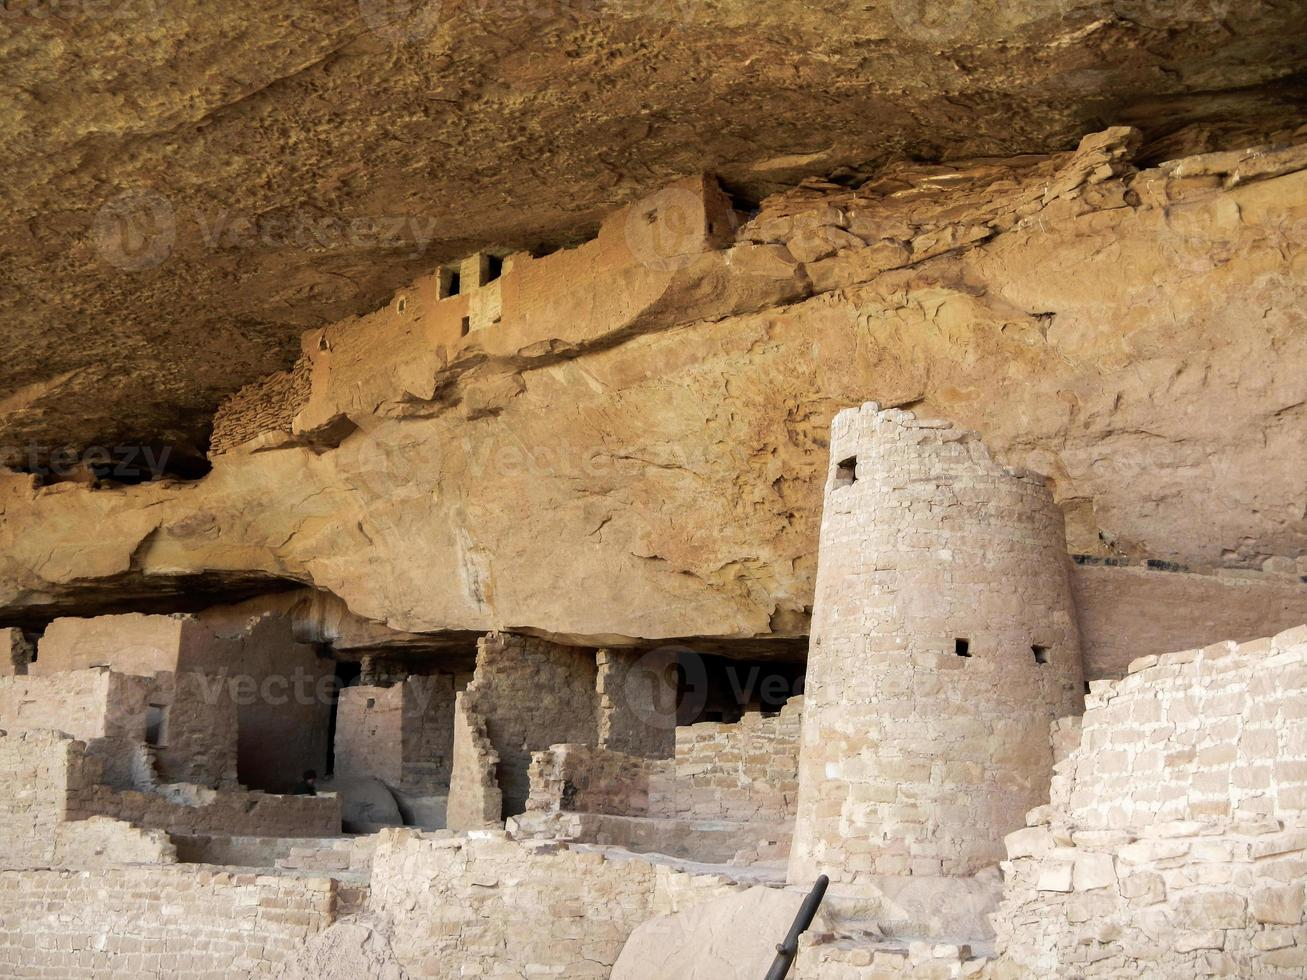 The abandoned dwellings under the cliff ceiling photo